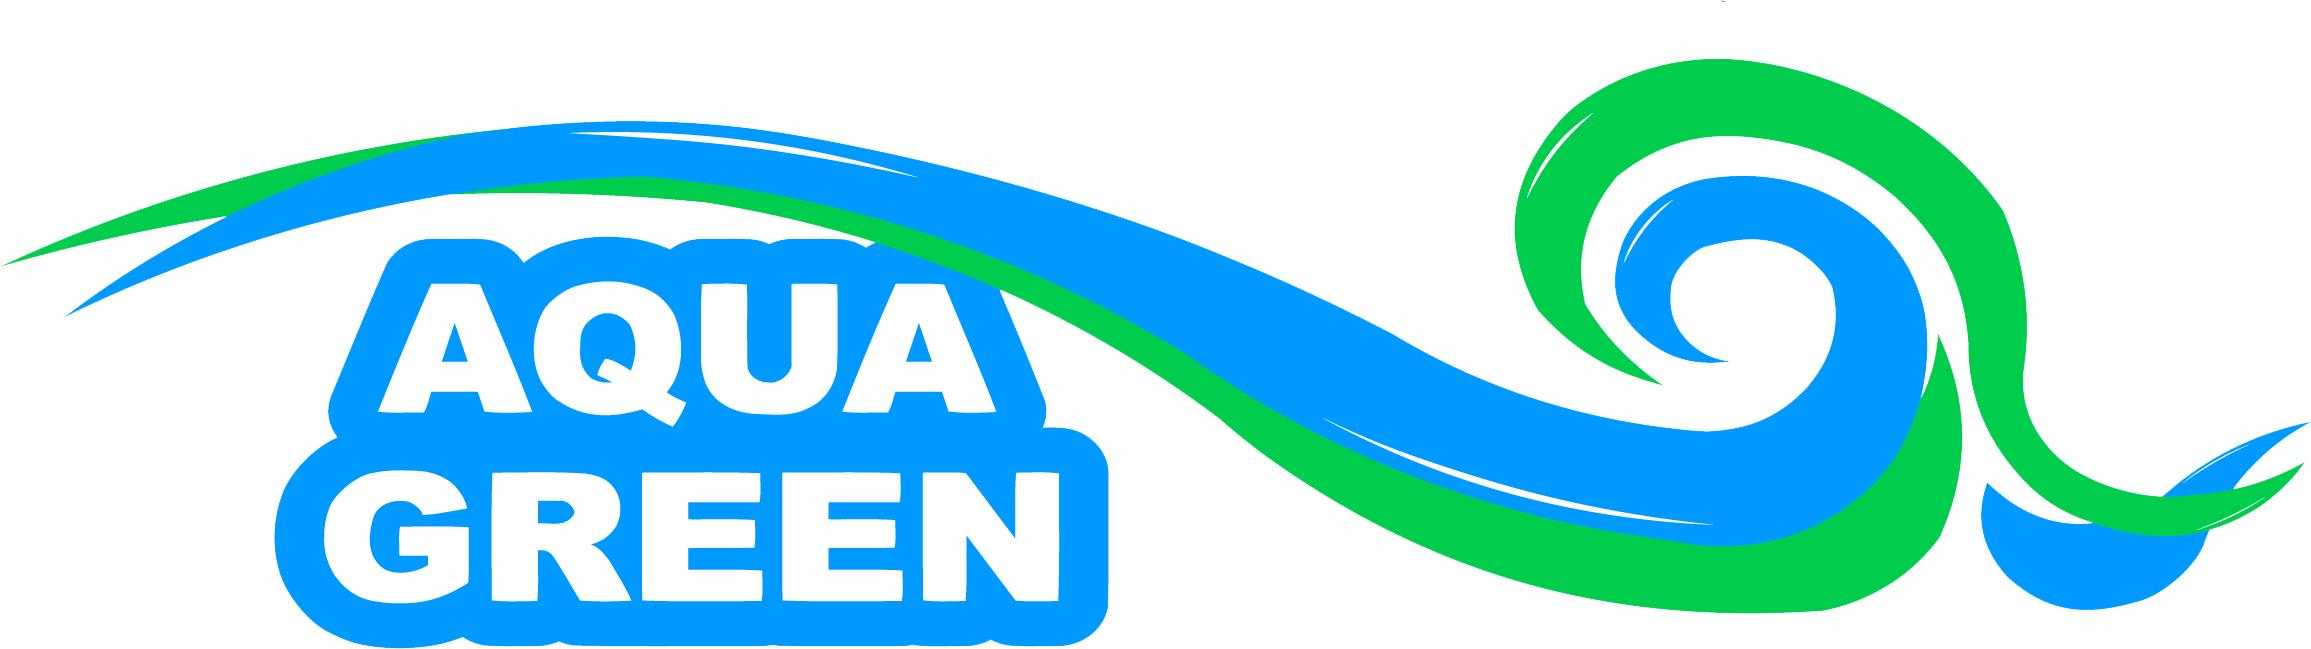 aquagreen logo_1_43_1_1